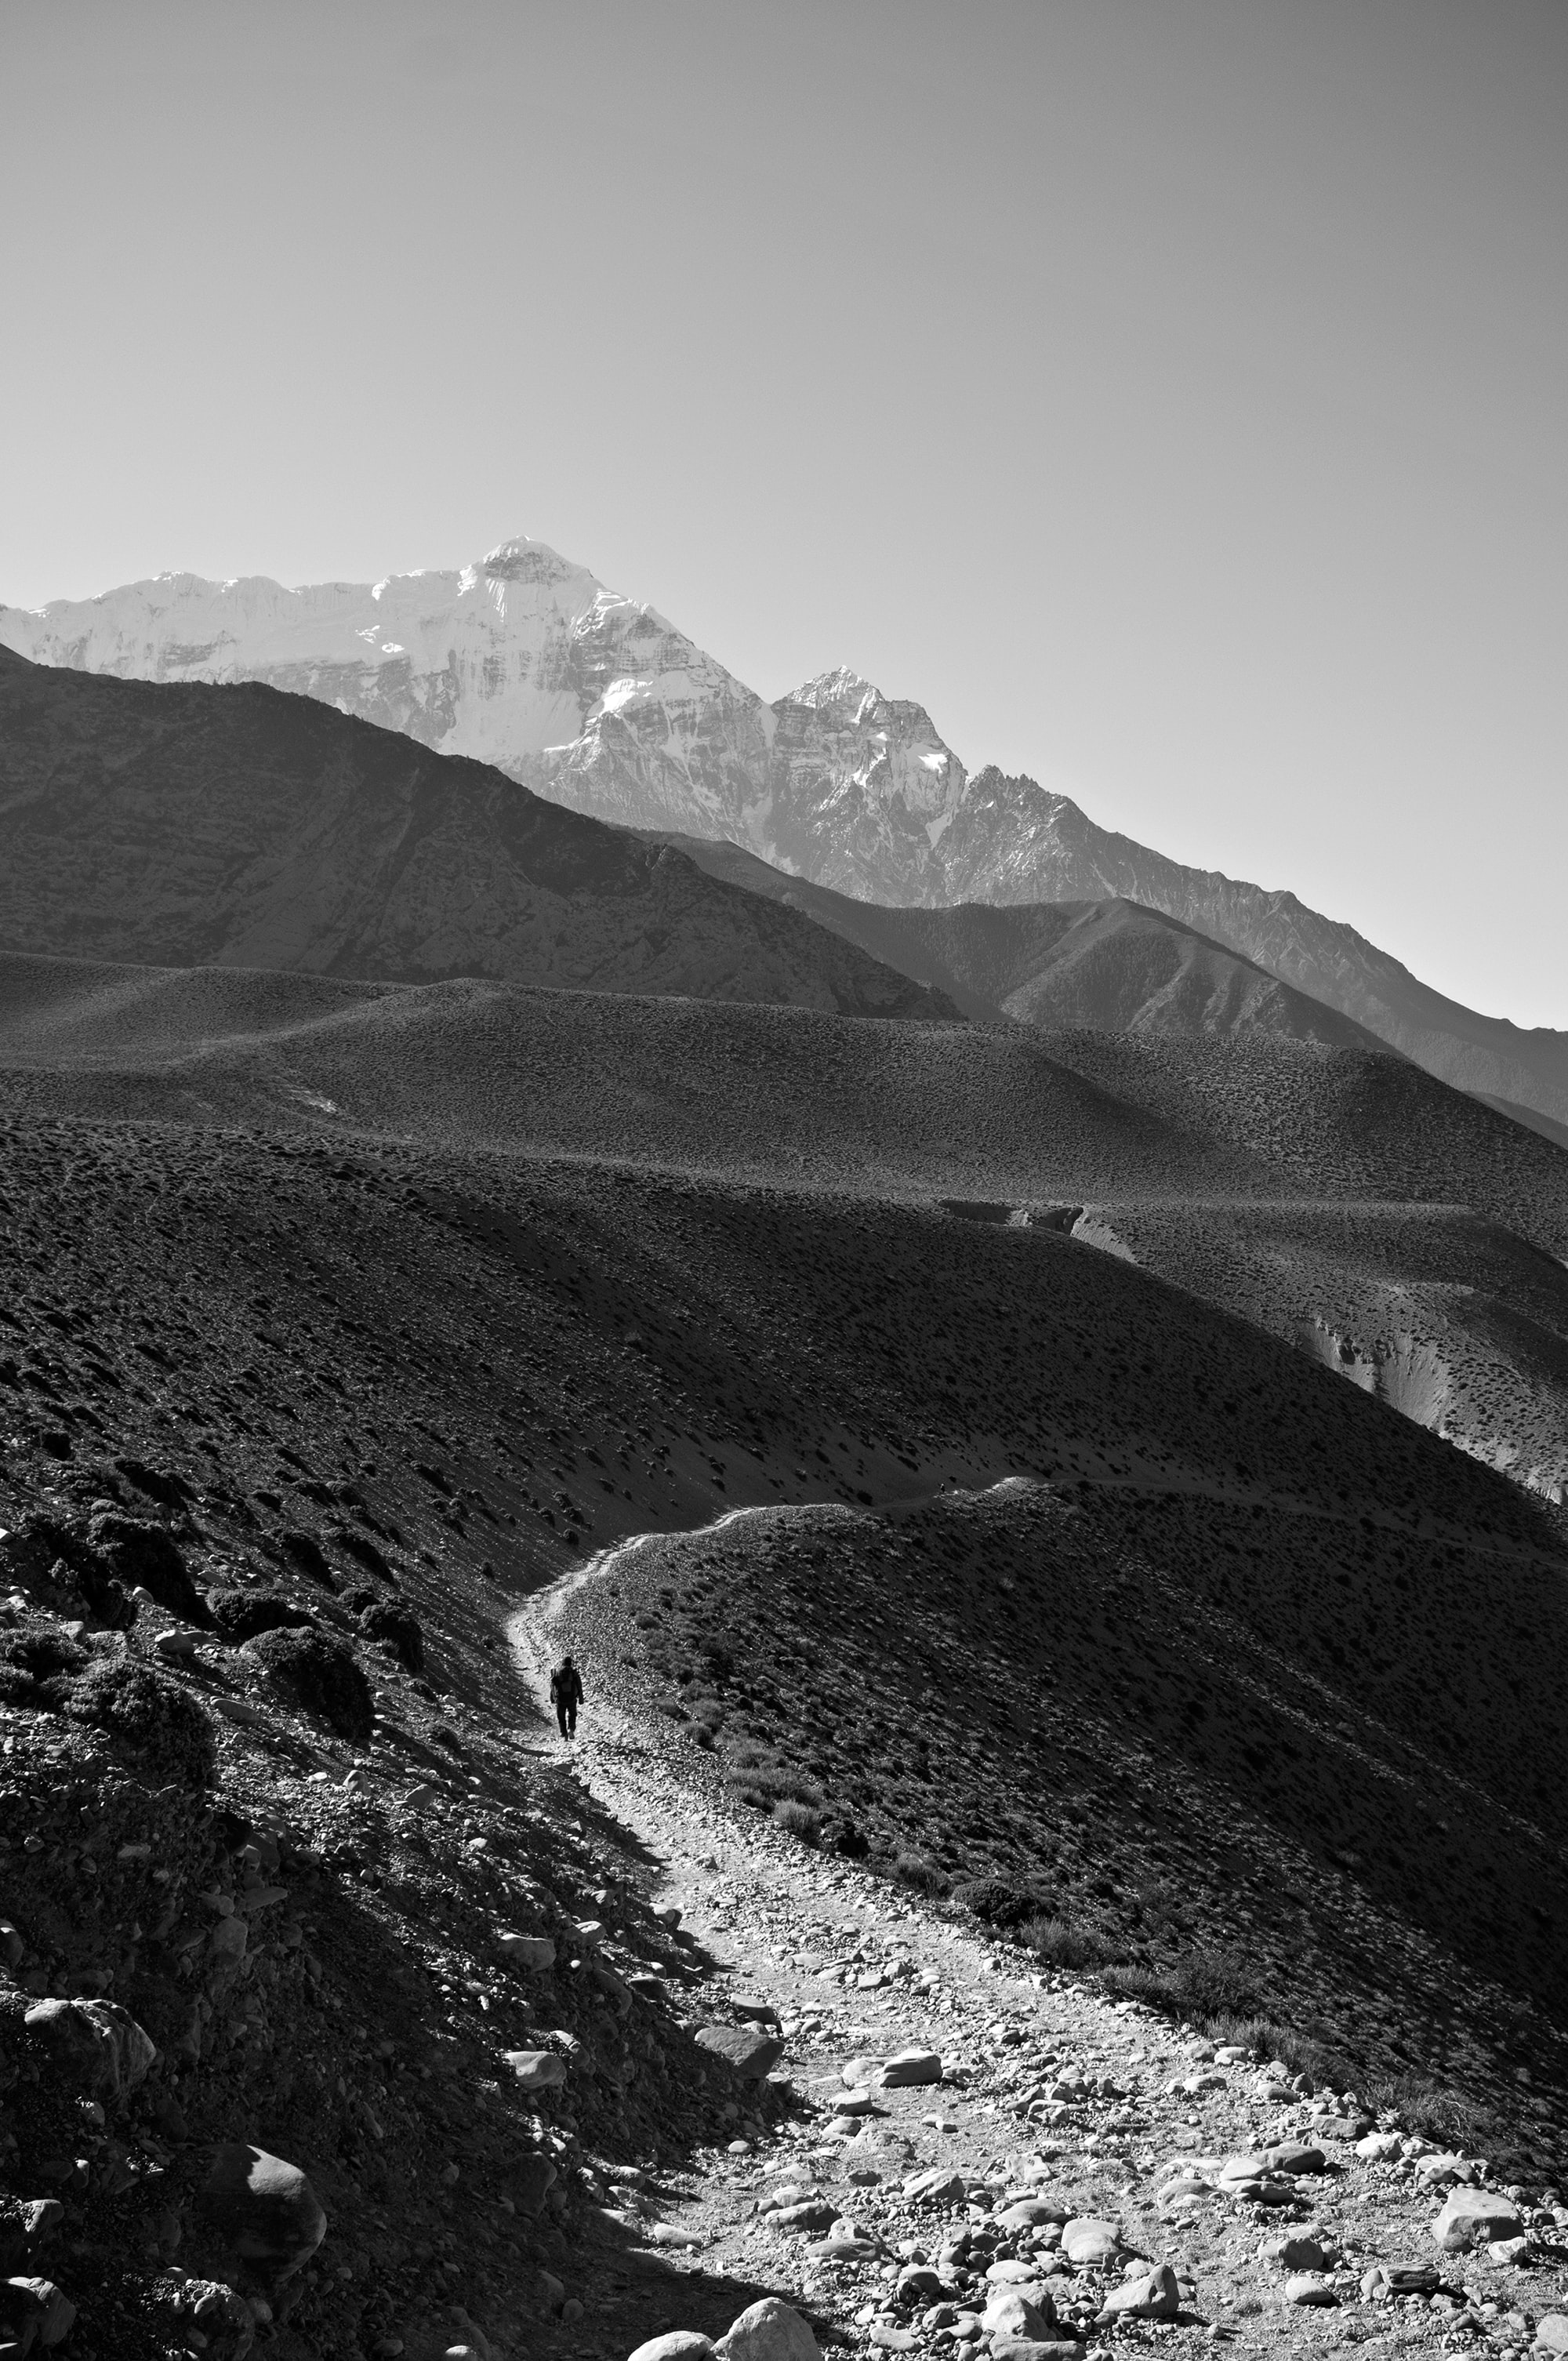 Black and white shot of person walking on desolate mountain trail with clear sky